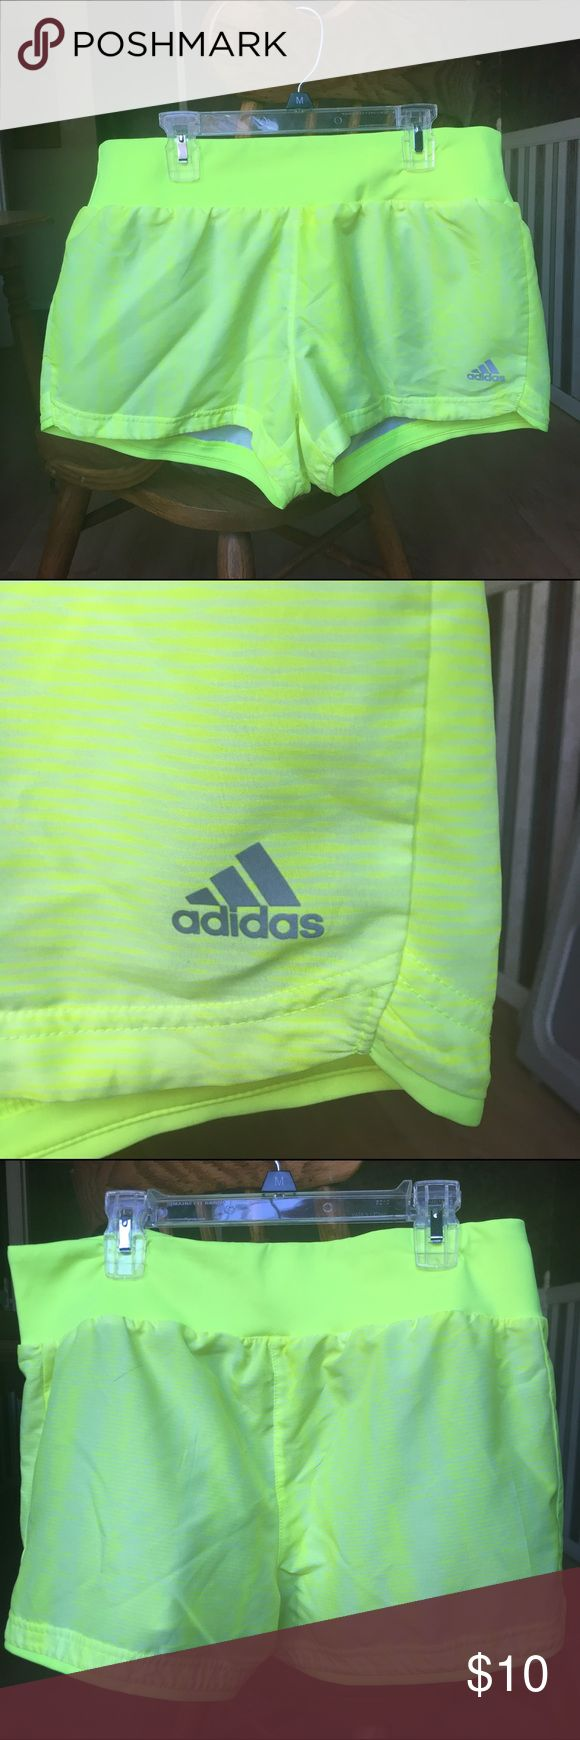 Adidas running shorts Neon yellow running shorts. A little see through, work perfect with spandex underneath Adidas Shorts